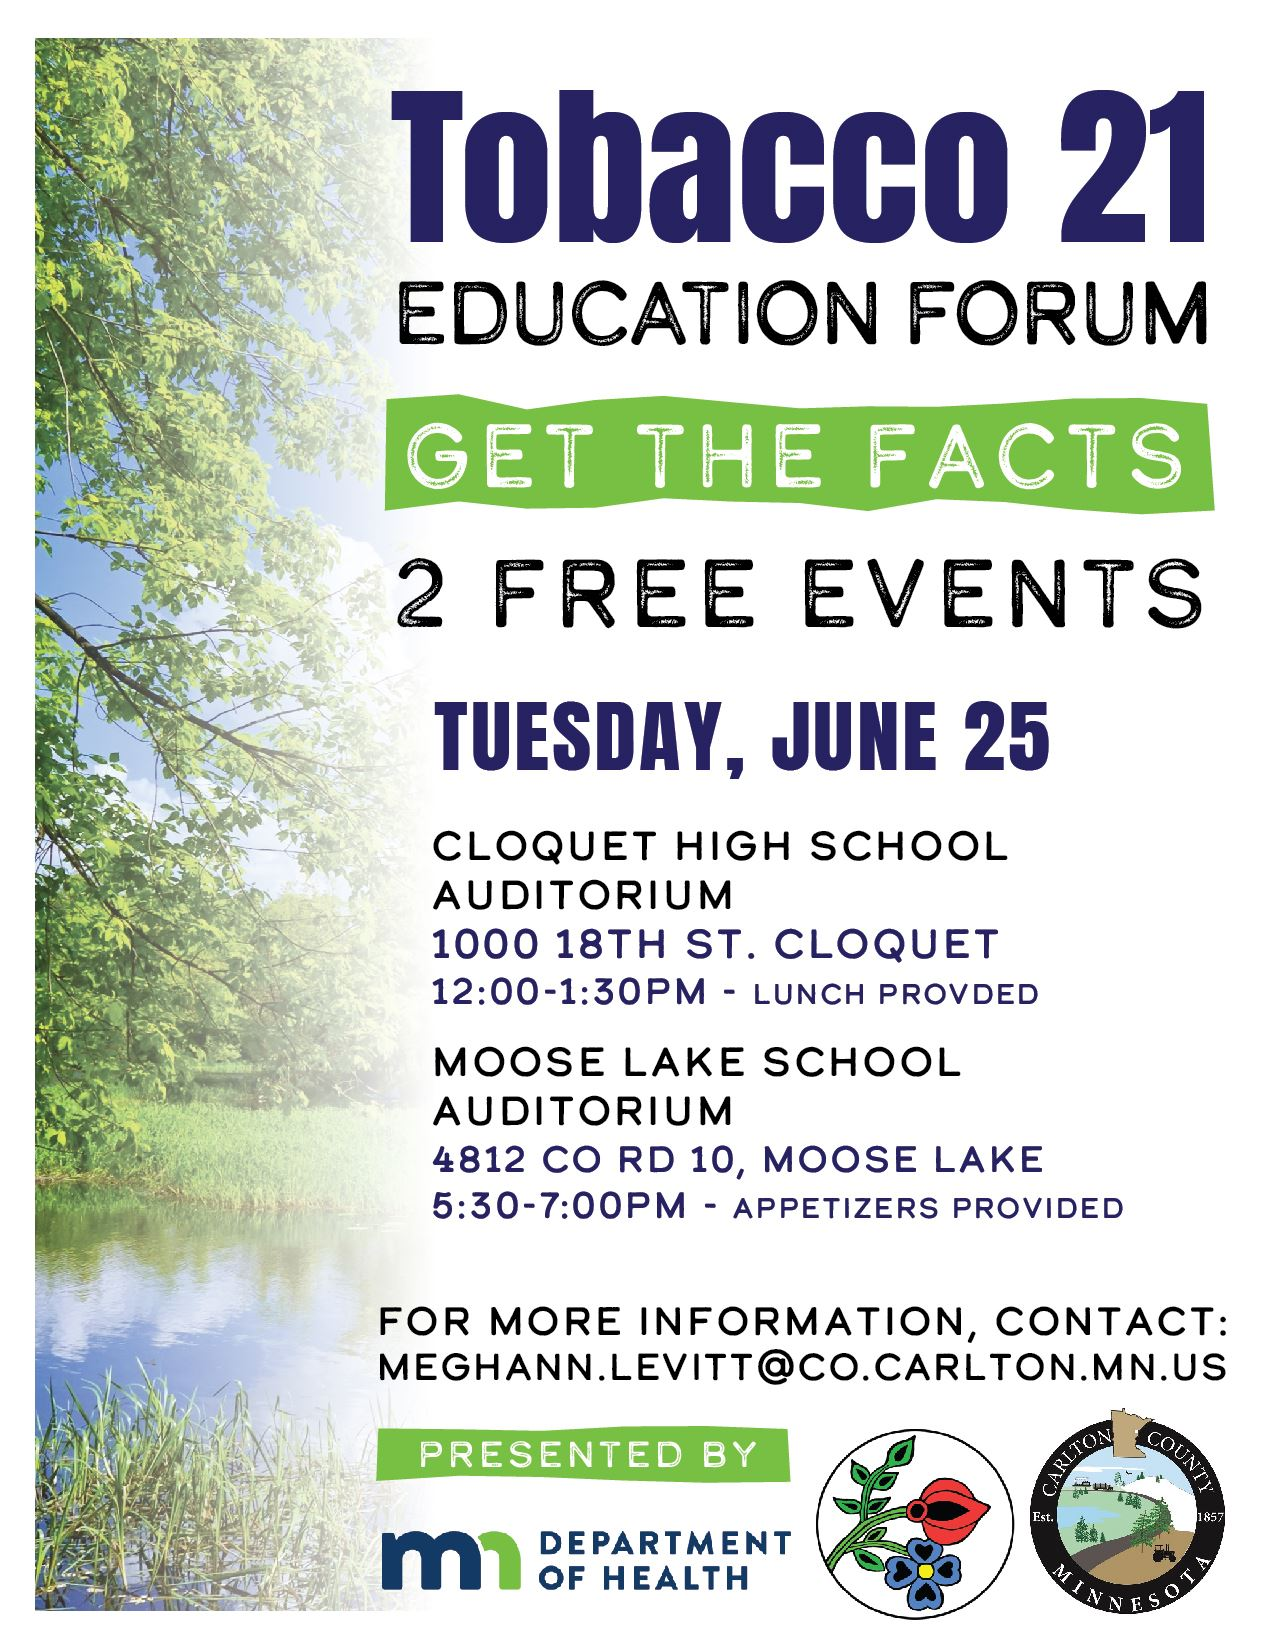 Tobacco 21 Education Forum